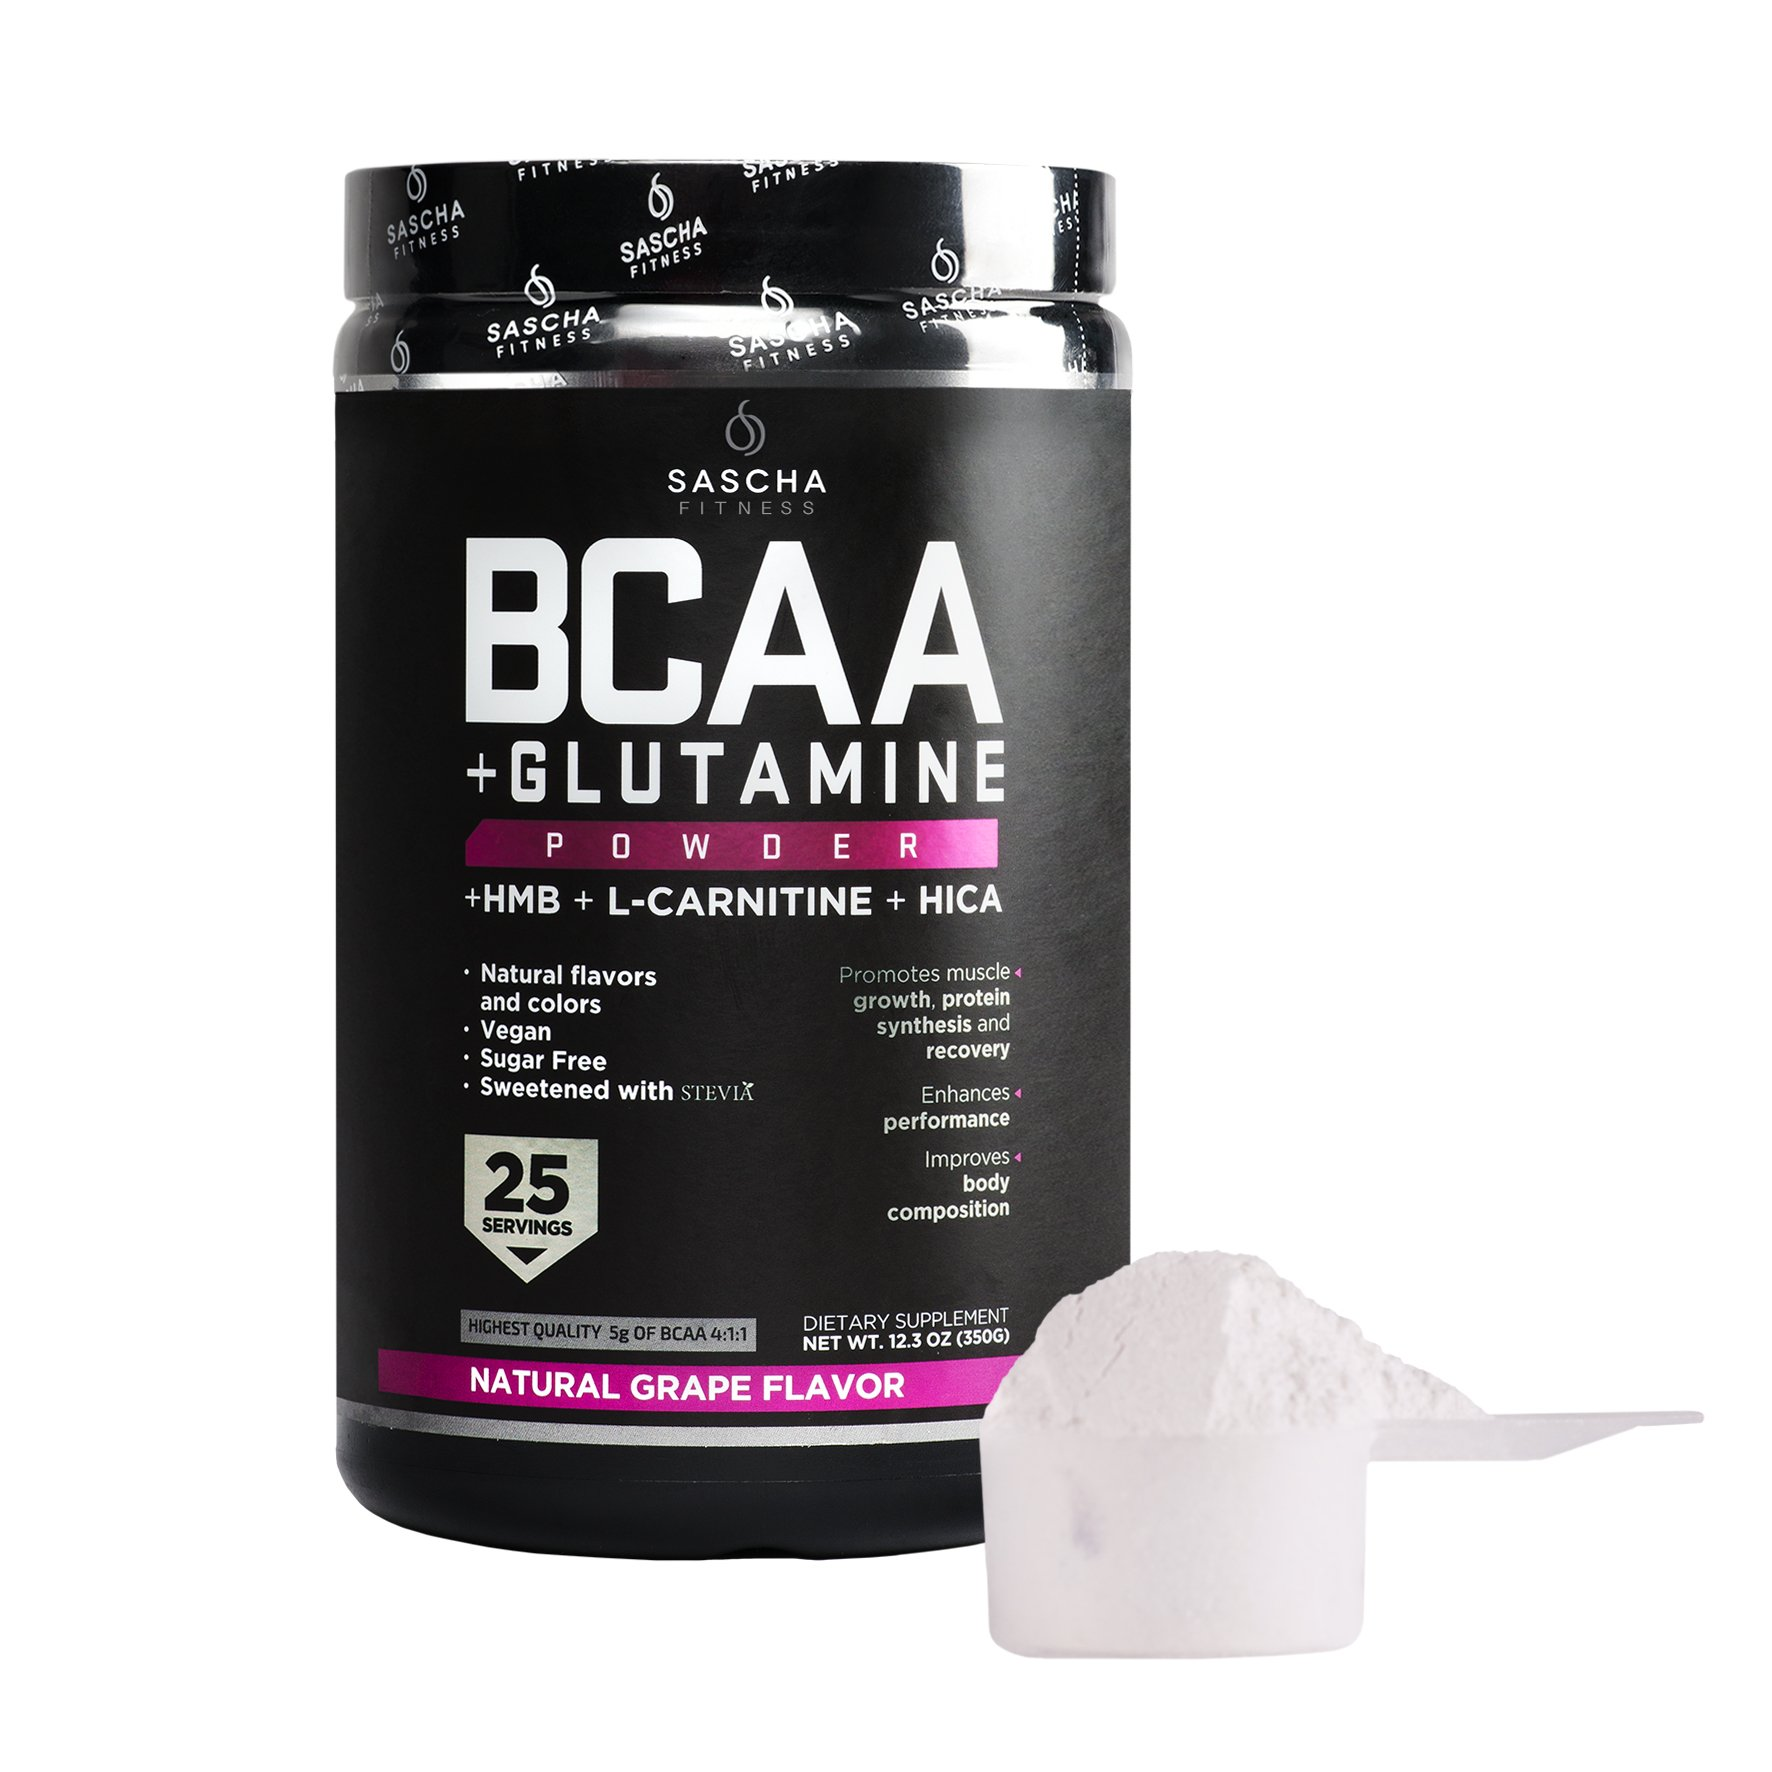 Sascha Fitness BCAA 4:1:1 + Glutamine, HMB, L-Carnitine, HICA | Powerful and Instant Powder Blend with Branched Chain Amino Acids (BCAAs) for Pre, Intra and Post-Workout | Natural Grape Flavor, 350g by SASCHA FITNESS (Image #2)